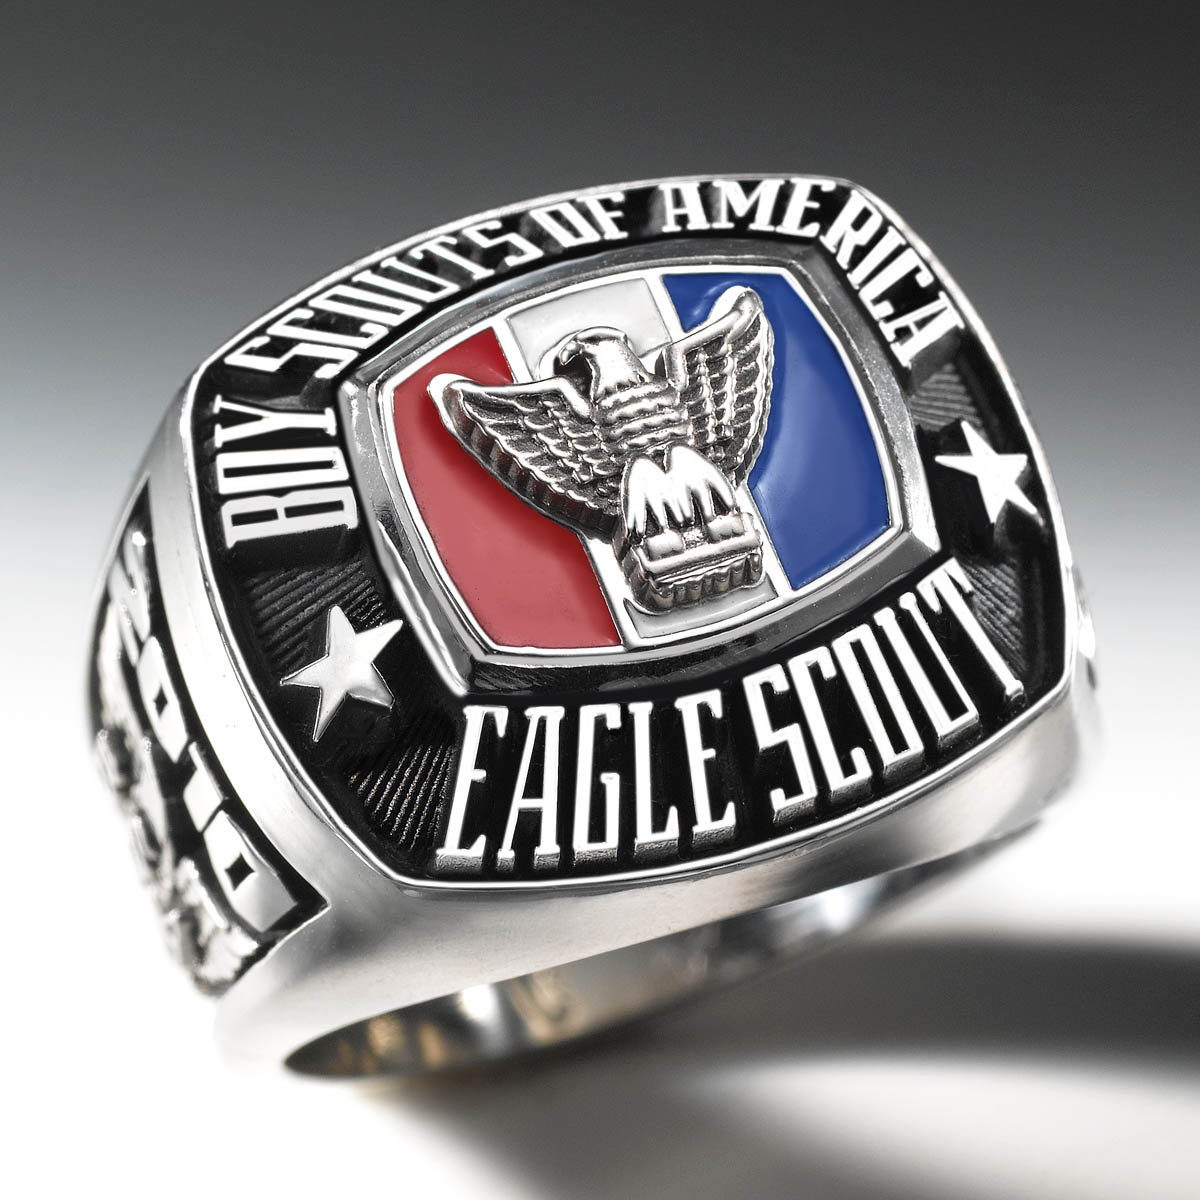 Eagle scout image - photo#53